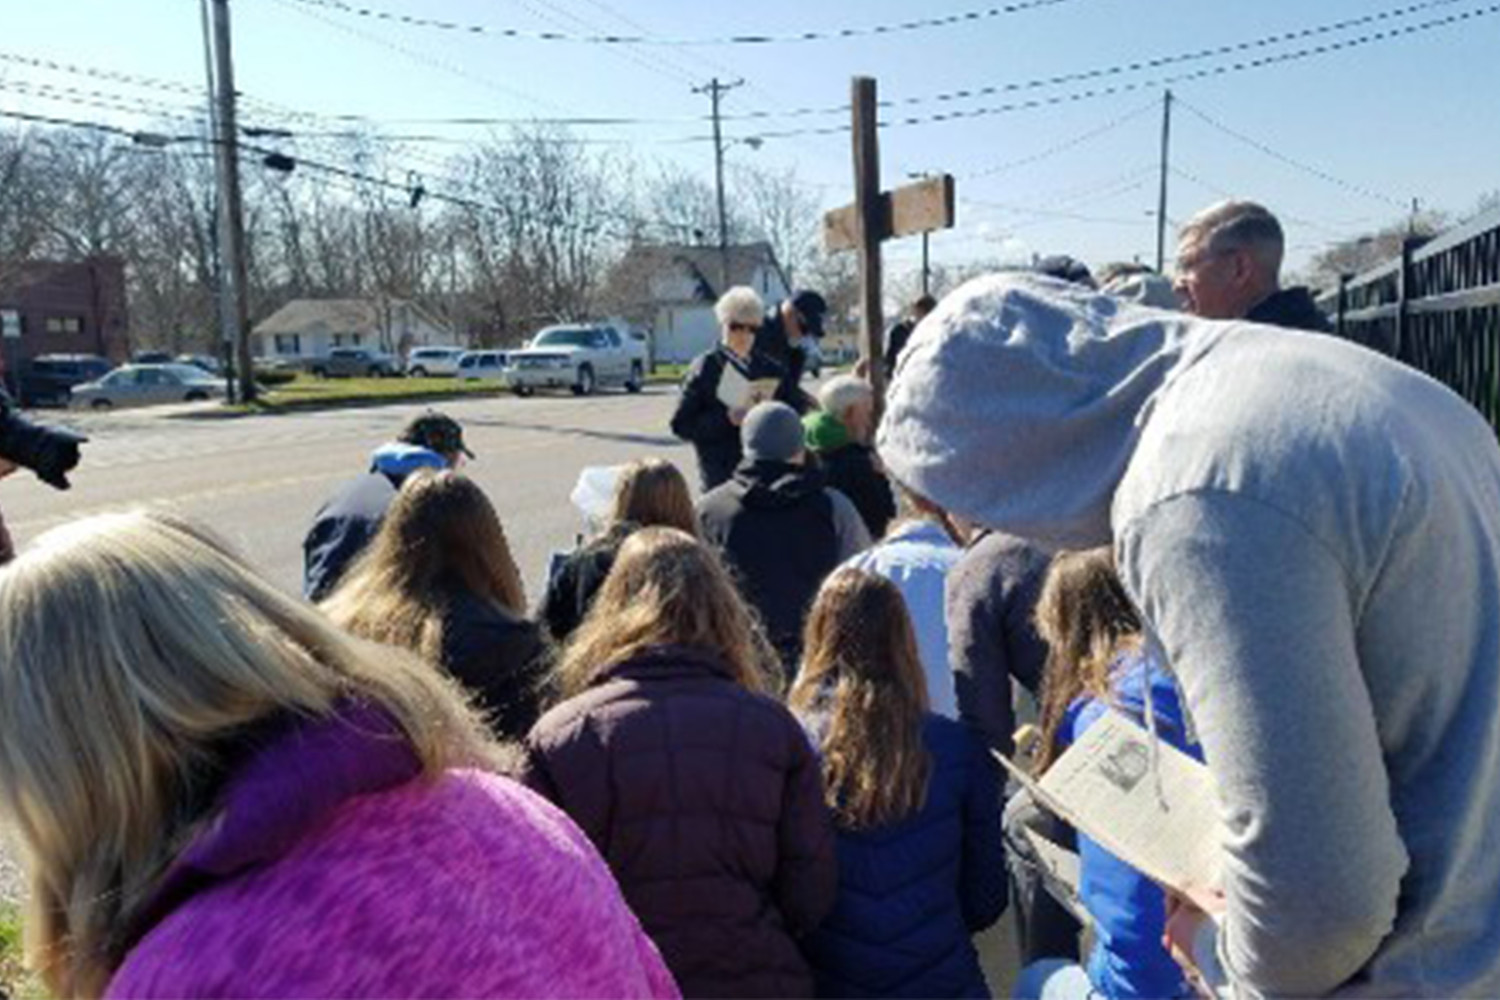 People pray for an end to abortion from the sidewalk outside the Columbia Planned Parenthood location as part of the 40 Days for Life Campaign. Abortions may cease, at least temporarily, at the clinic due to a recent court decision.